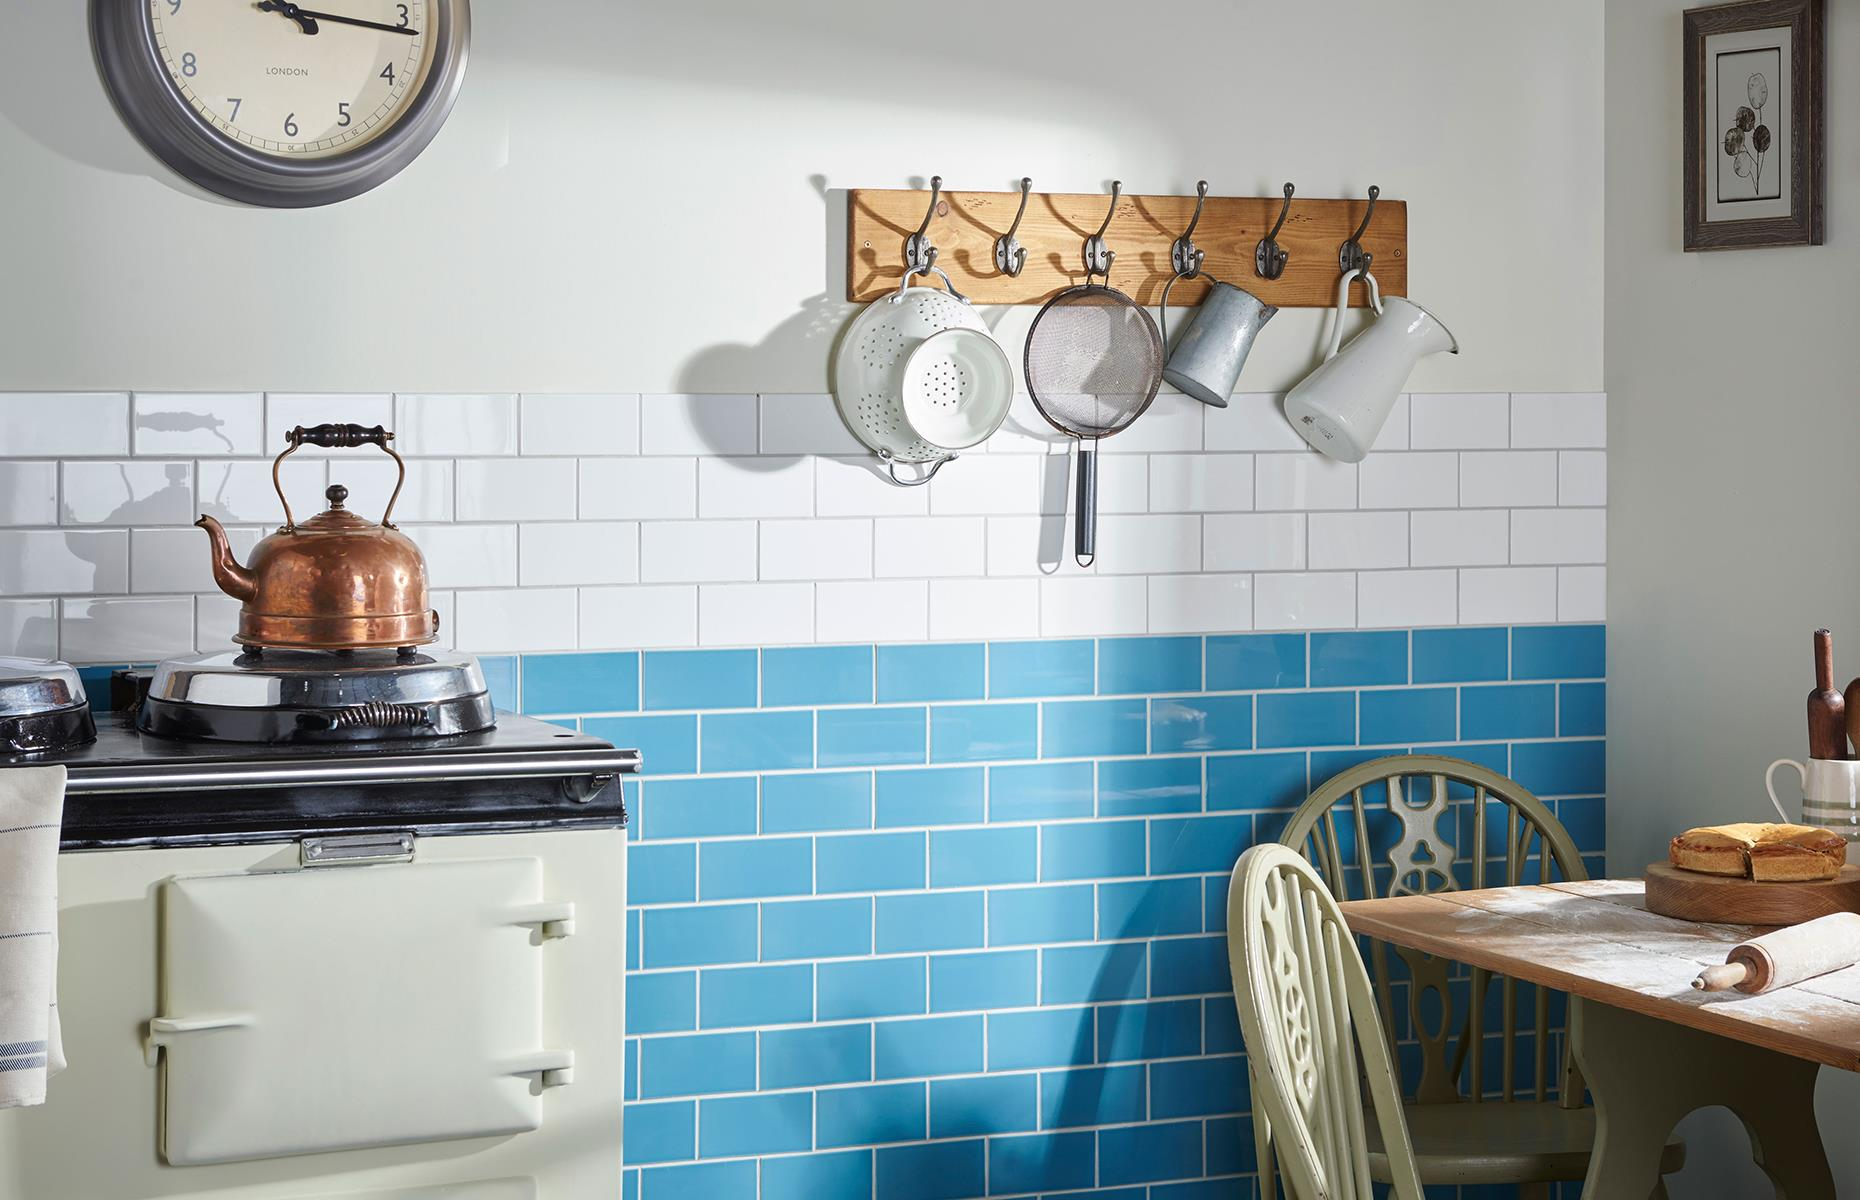 Kitchen wall tiles: Ideas for every style and budget | loveproperty.com